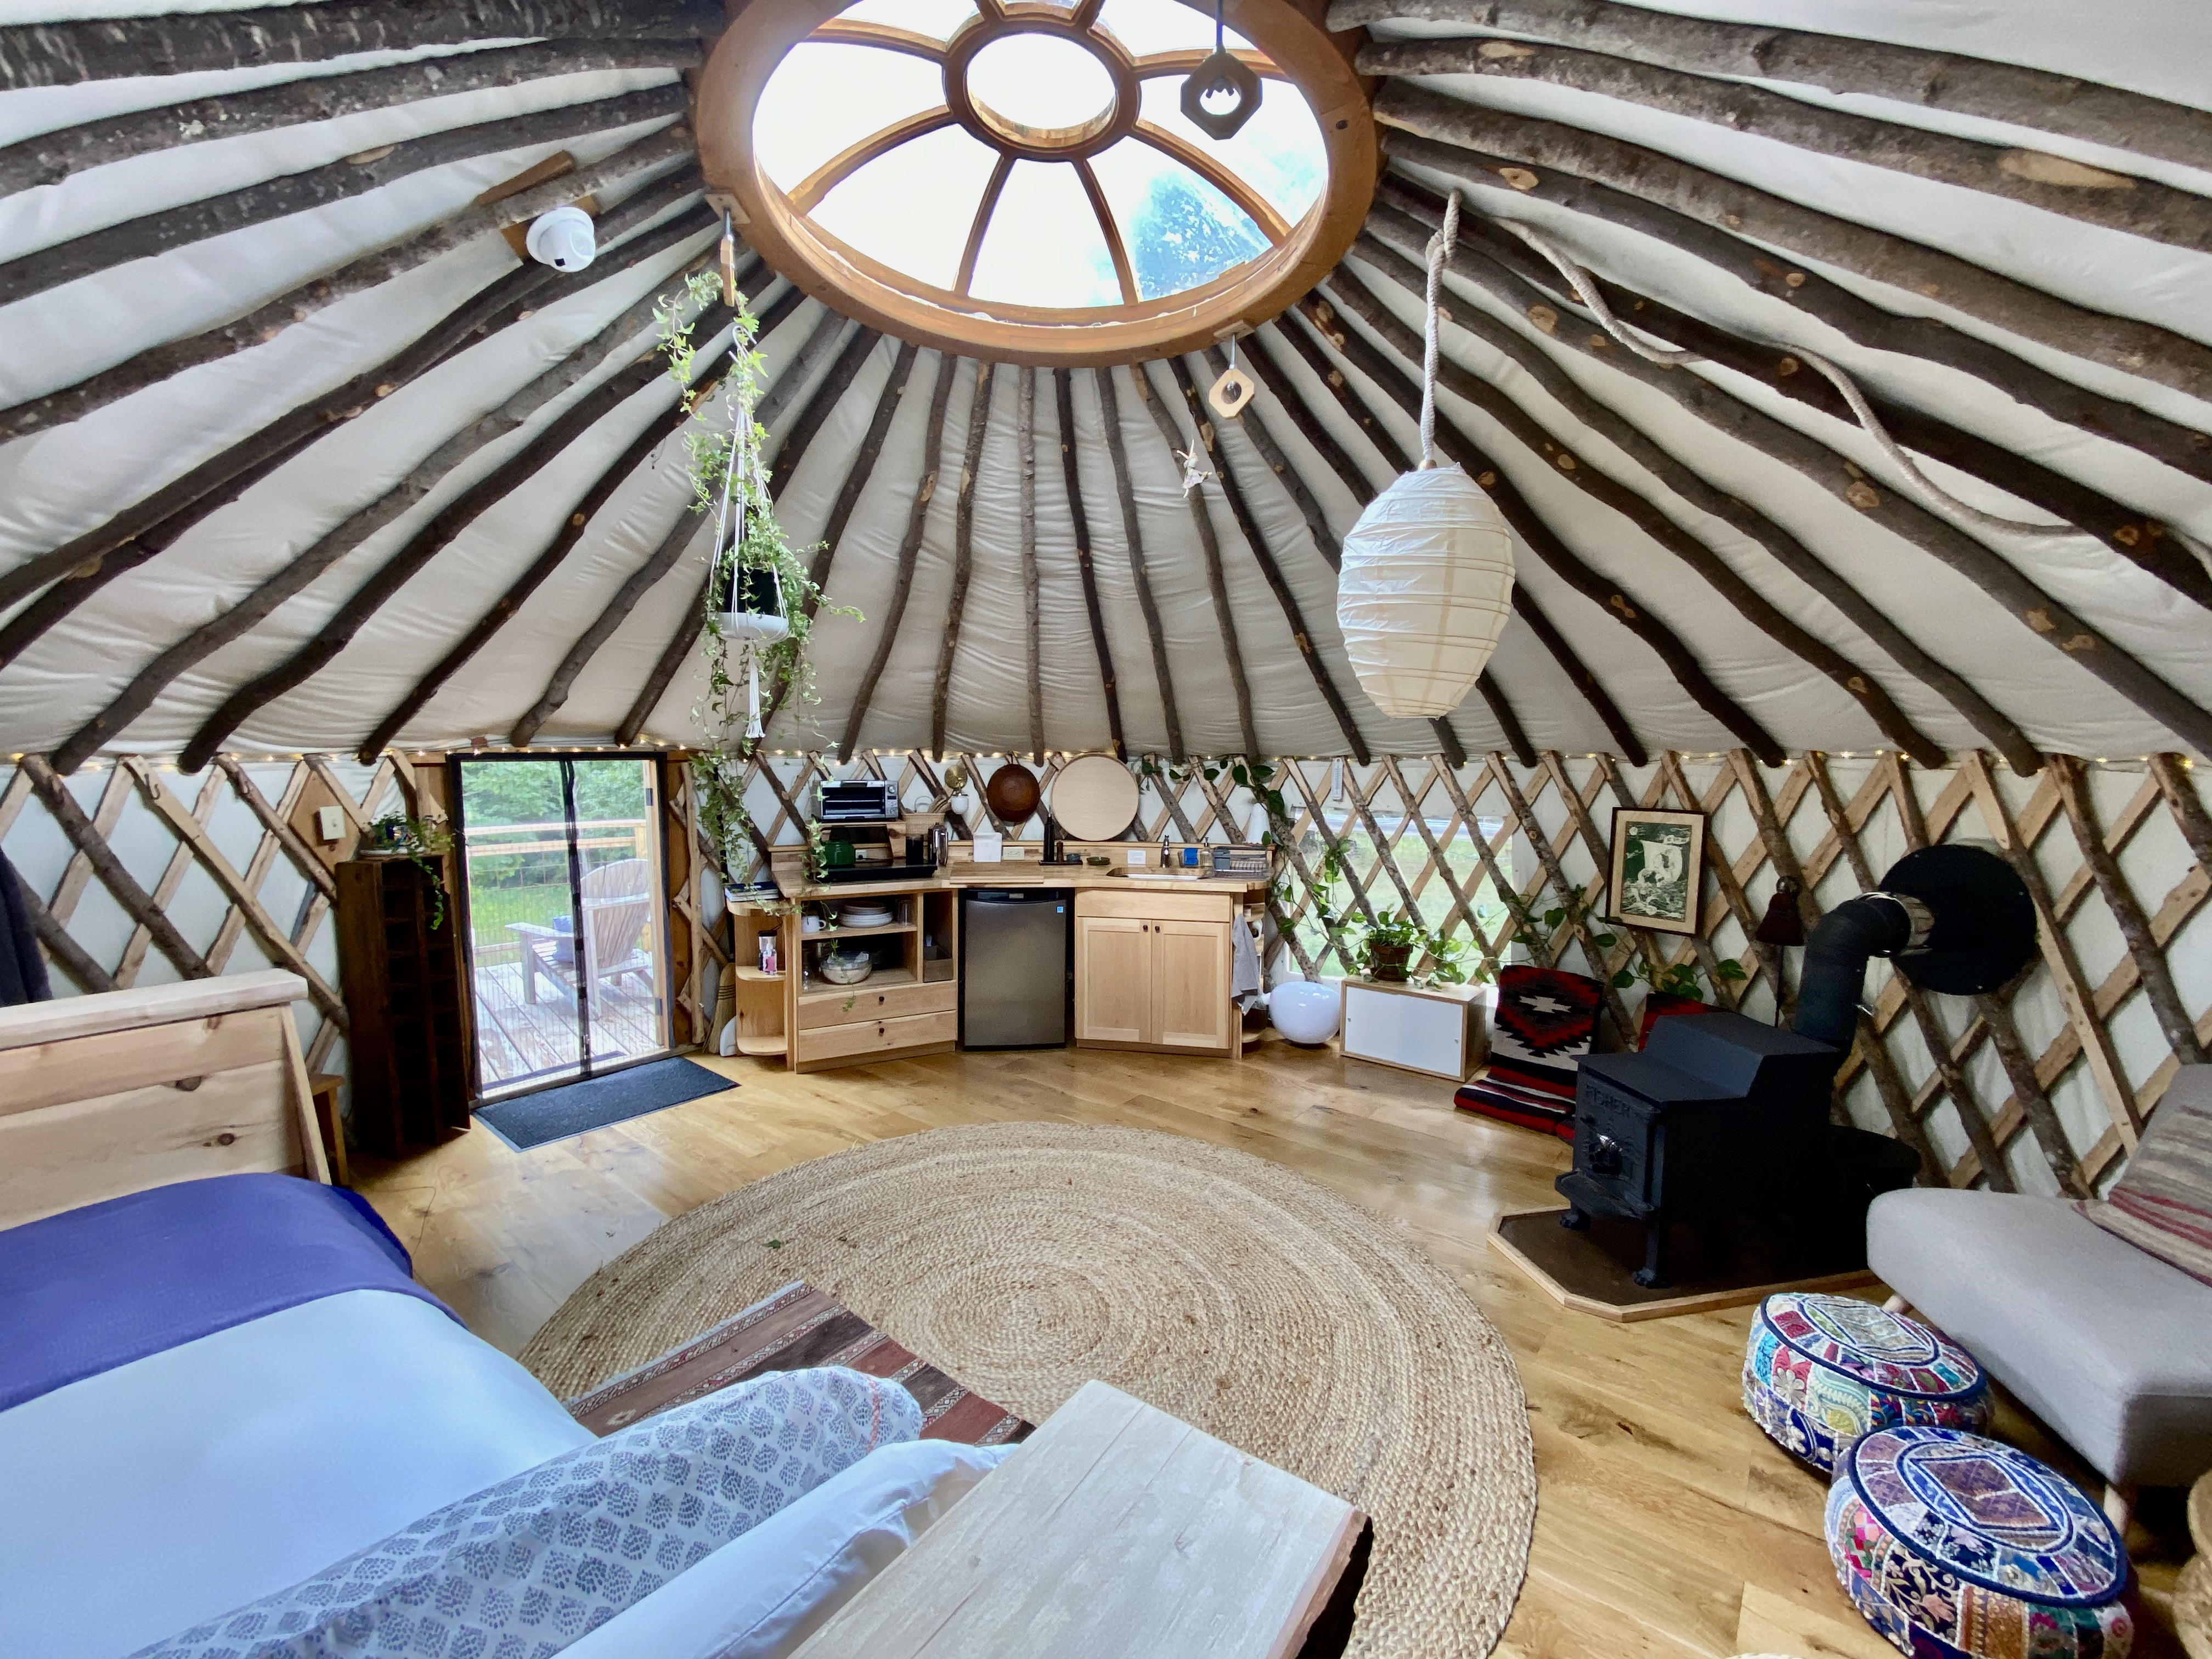 Vermont Retreat Yurt A Restorative Escape Yurts For Rent In Putney Vermont United States